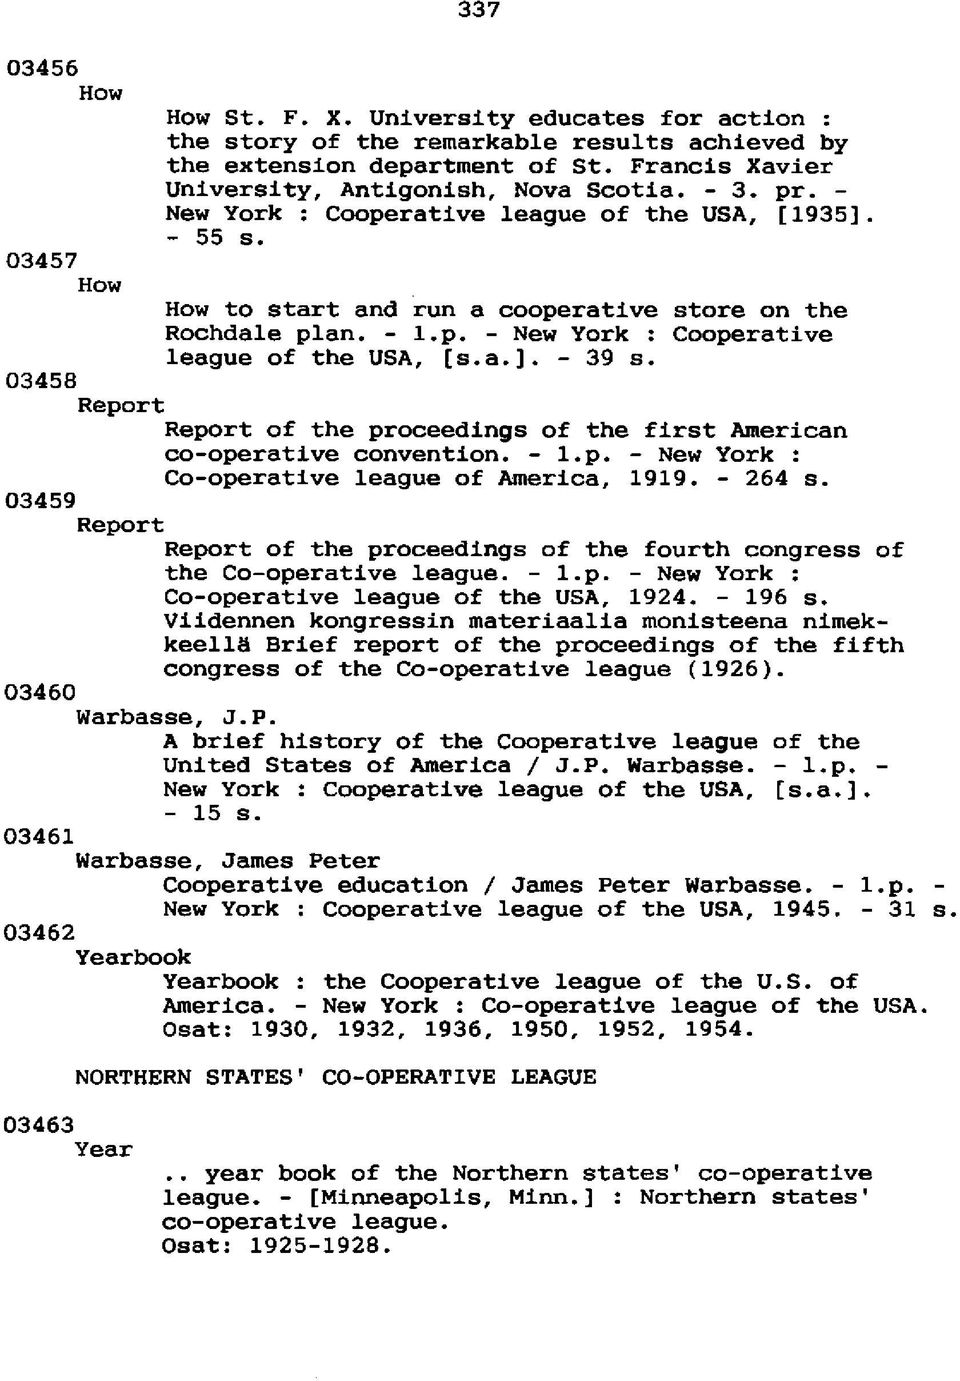 a.]. - 39 s. 03458 Report Report of the proceedings of the first American co-operative convention. - l.p. - New York : Co-operative league of America, 1919. - 264 s.